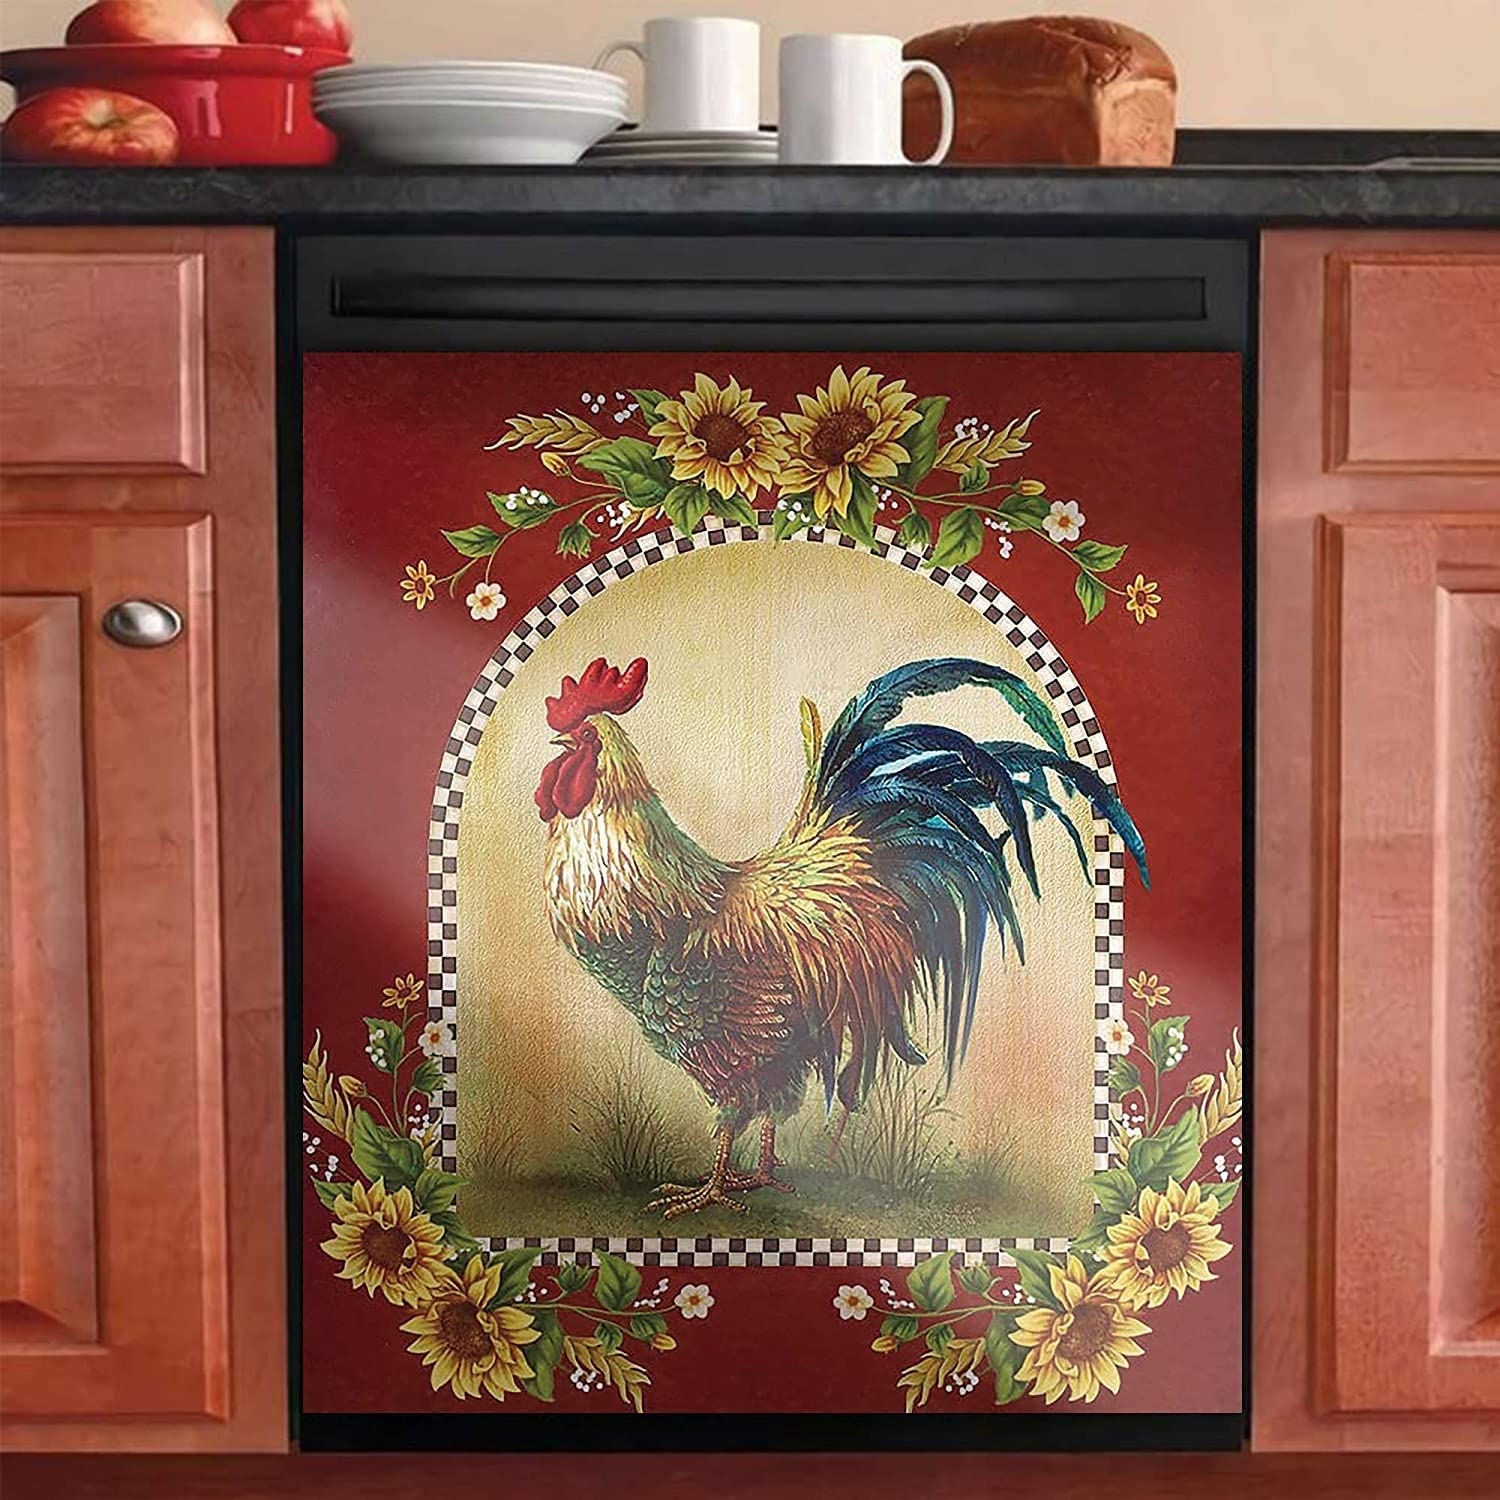 Magnetic Brand new Dishwasher Max 40% OFF Sticker Farmhouse Face Chicken Rooster Dish